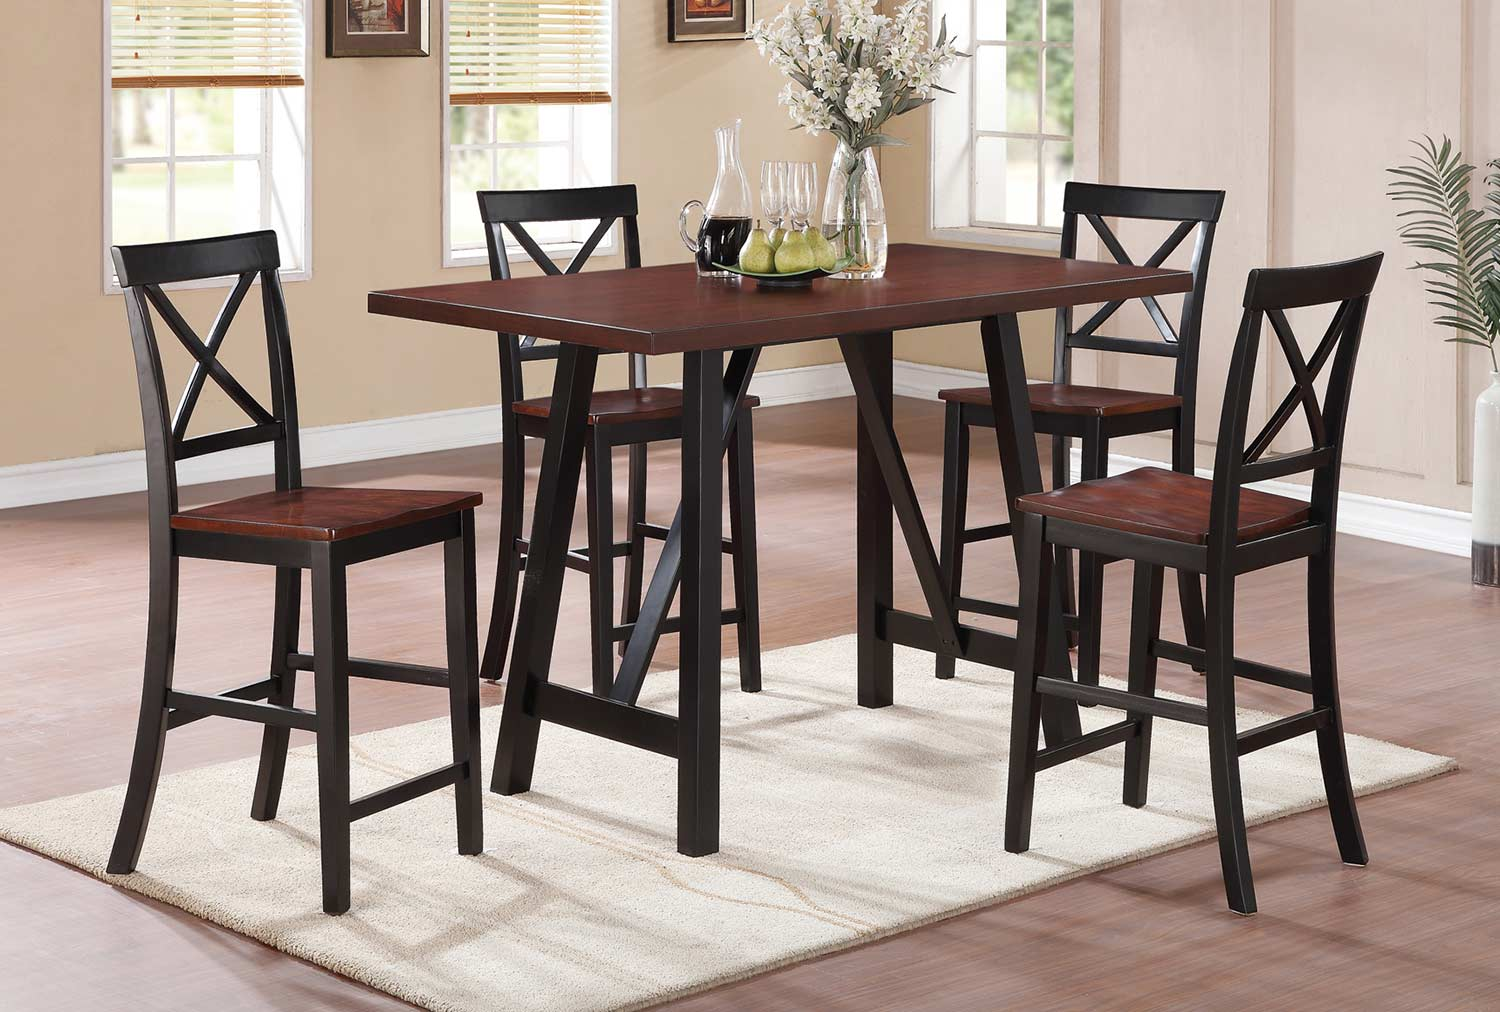 Coaster Makelim Counter Height Dining Set - Black/Walnut